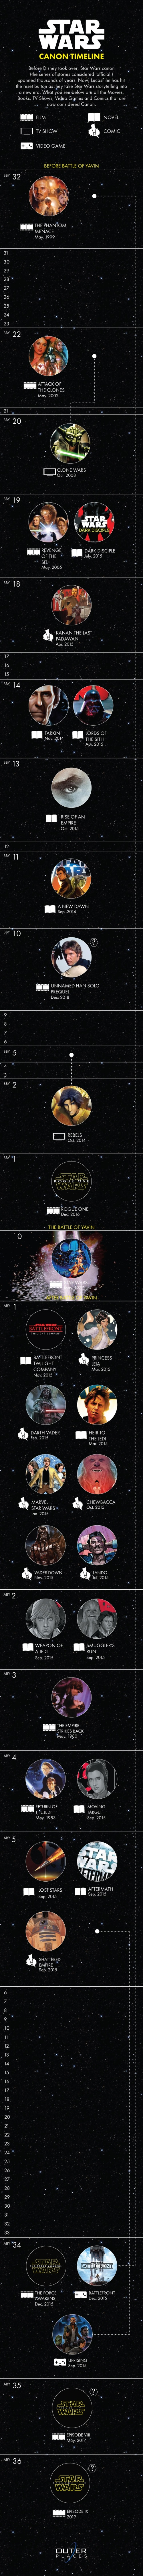 infographic-star-wars-w715